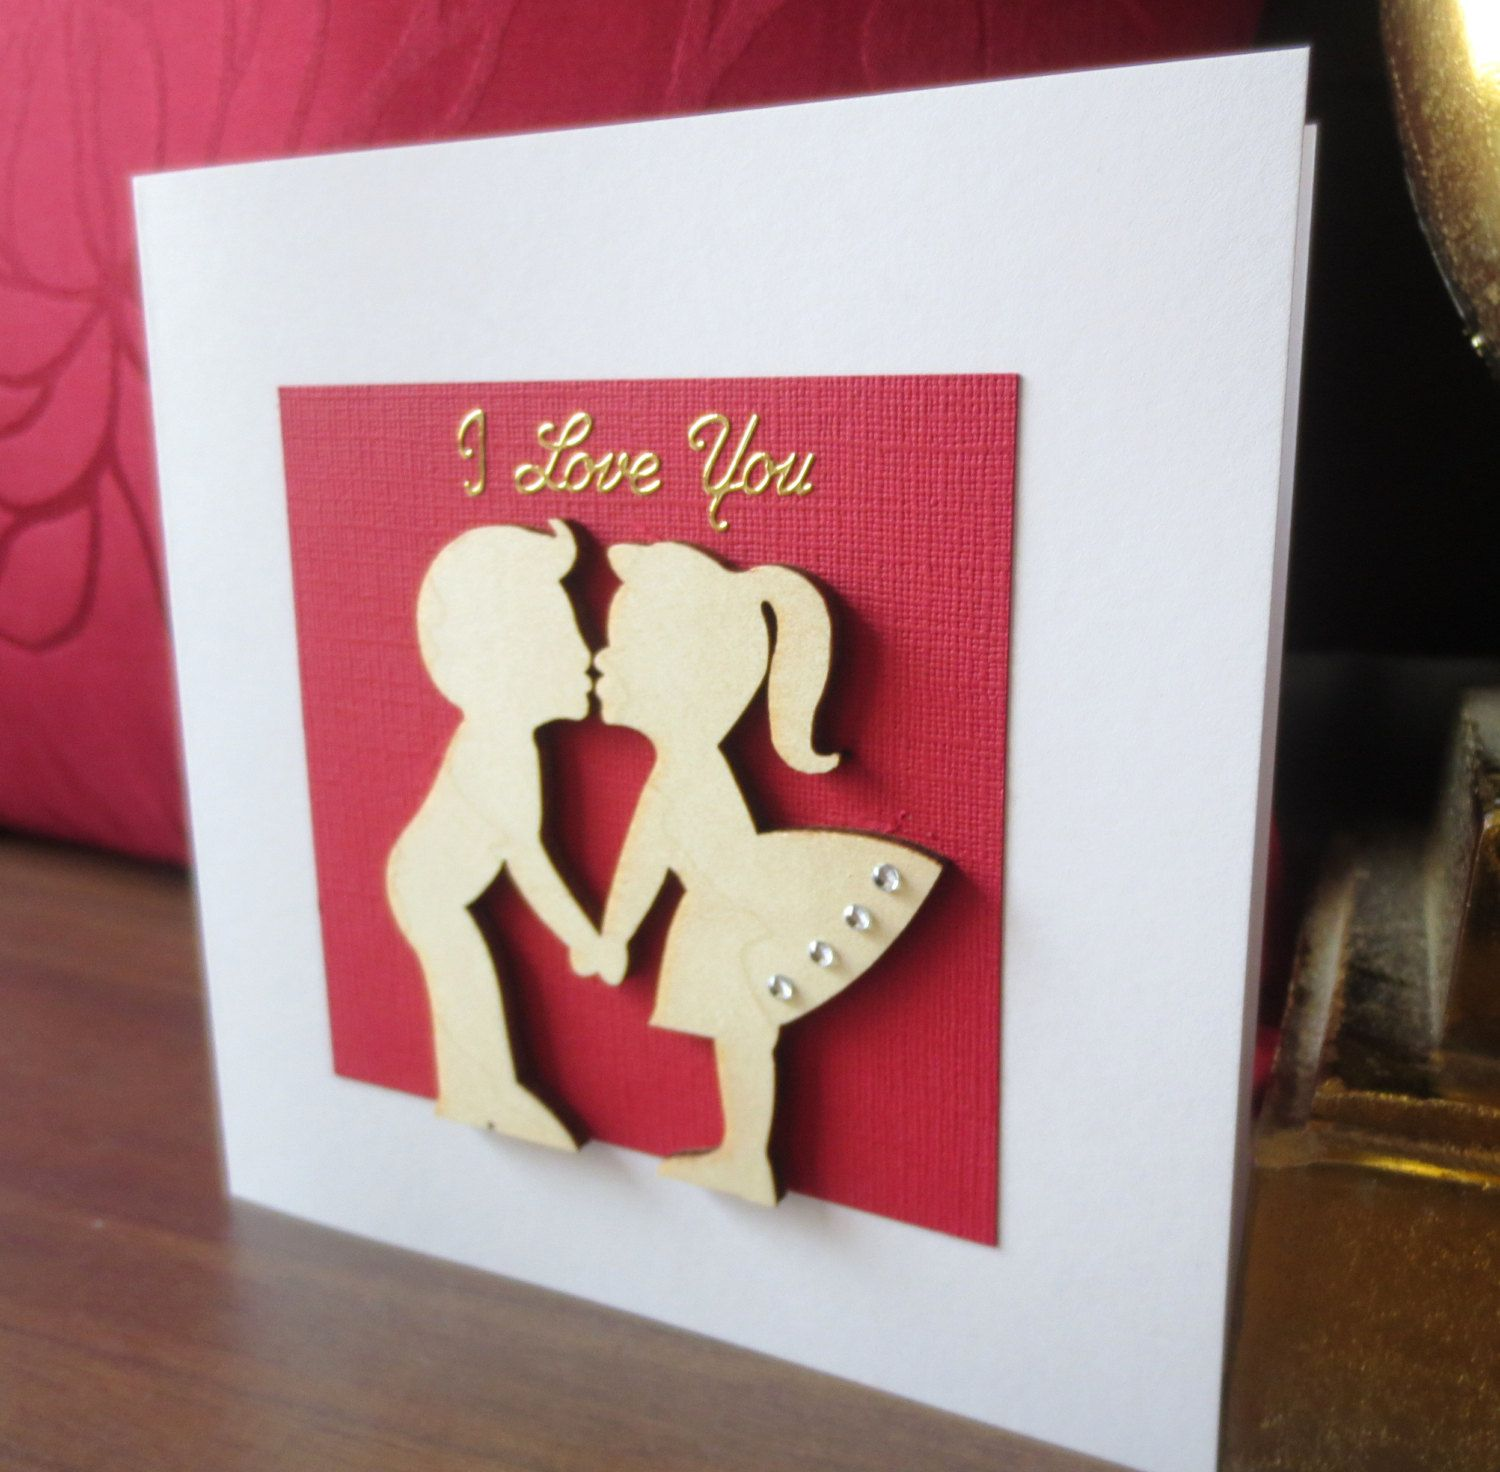 Marvelous Valentines Card I Love You Card Handmade Groom To Bride To My Personalised Birthday Cards Paralily Jamesorg